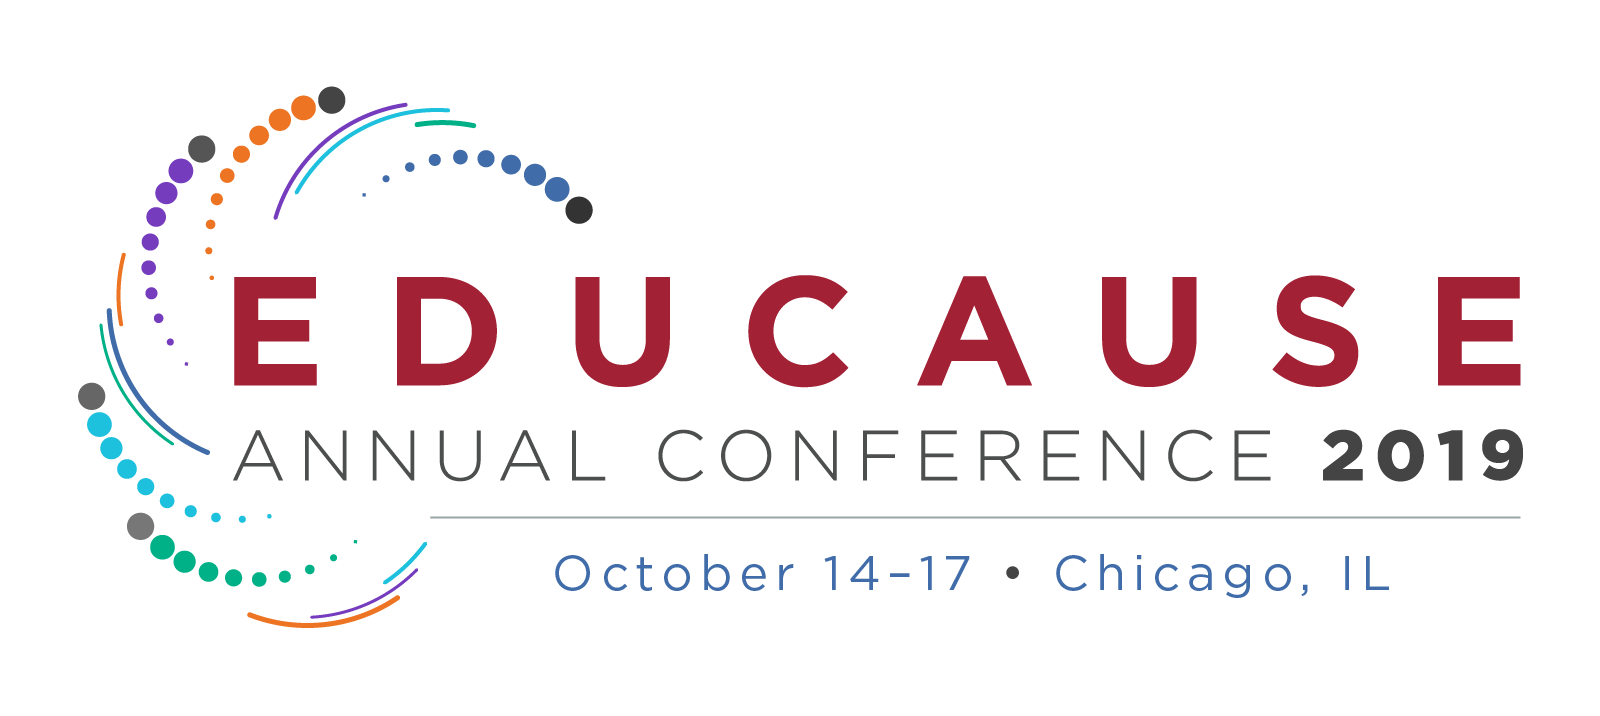 EDUCAUSE 2019 Conference artwork